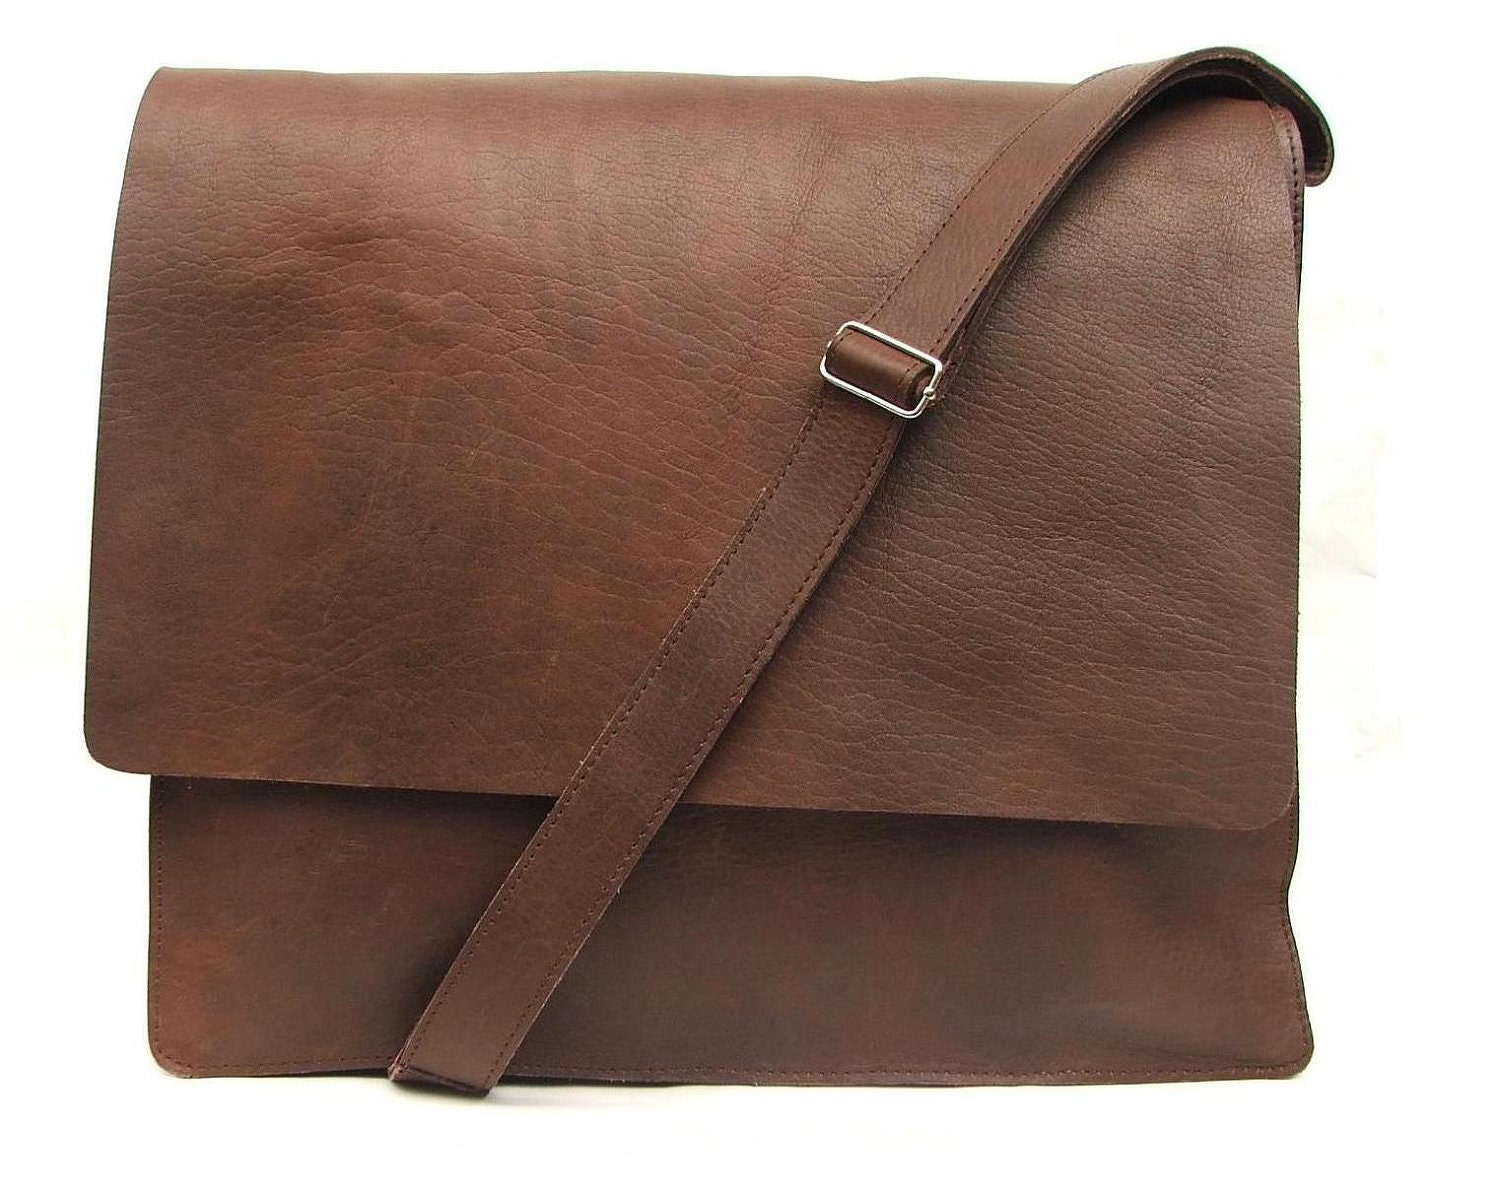 A man is often defined by what he carries. That's why at Buffalo Jackson we seek to make leather and canvas bags that reflect a man's true character - wild.